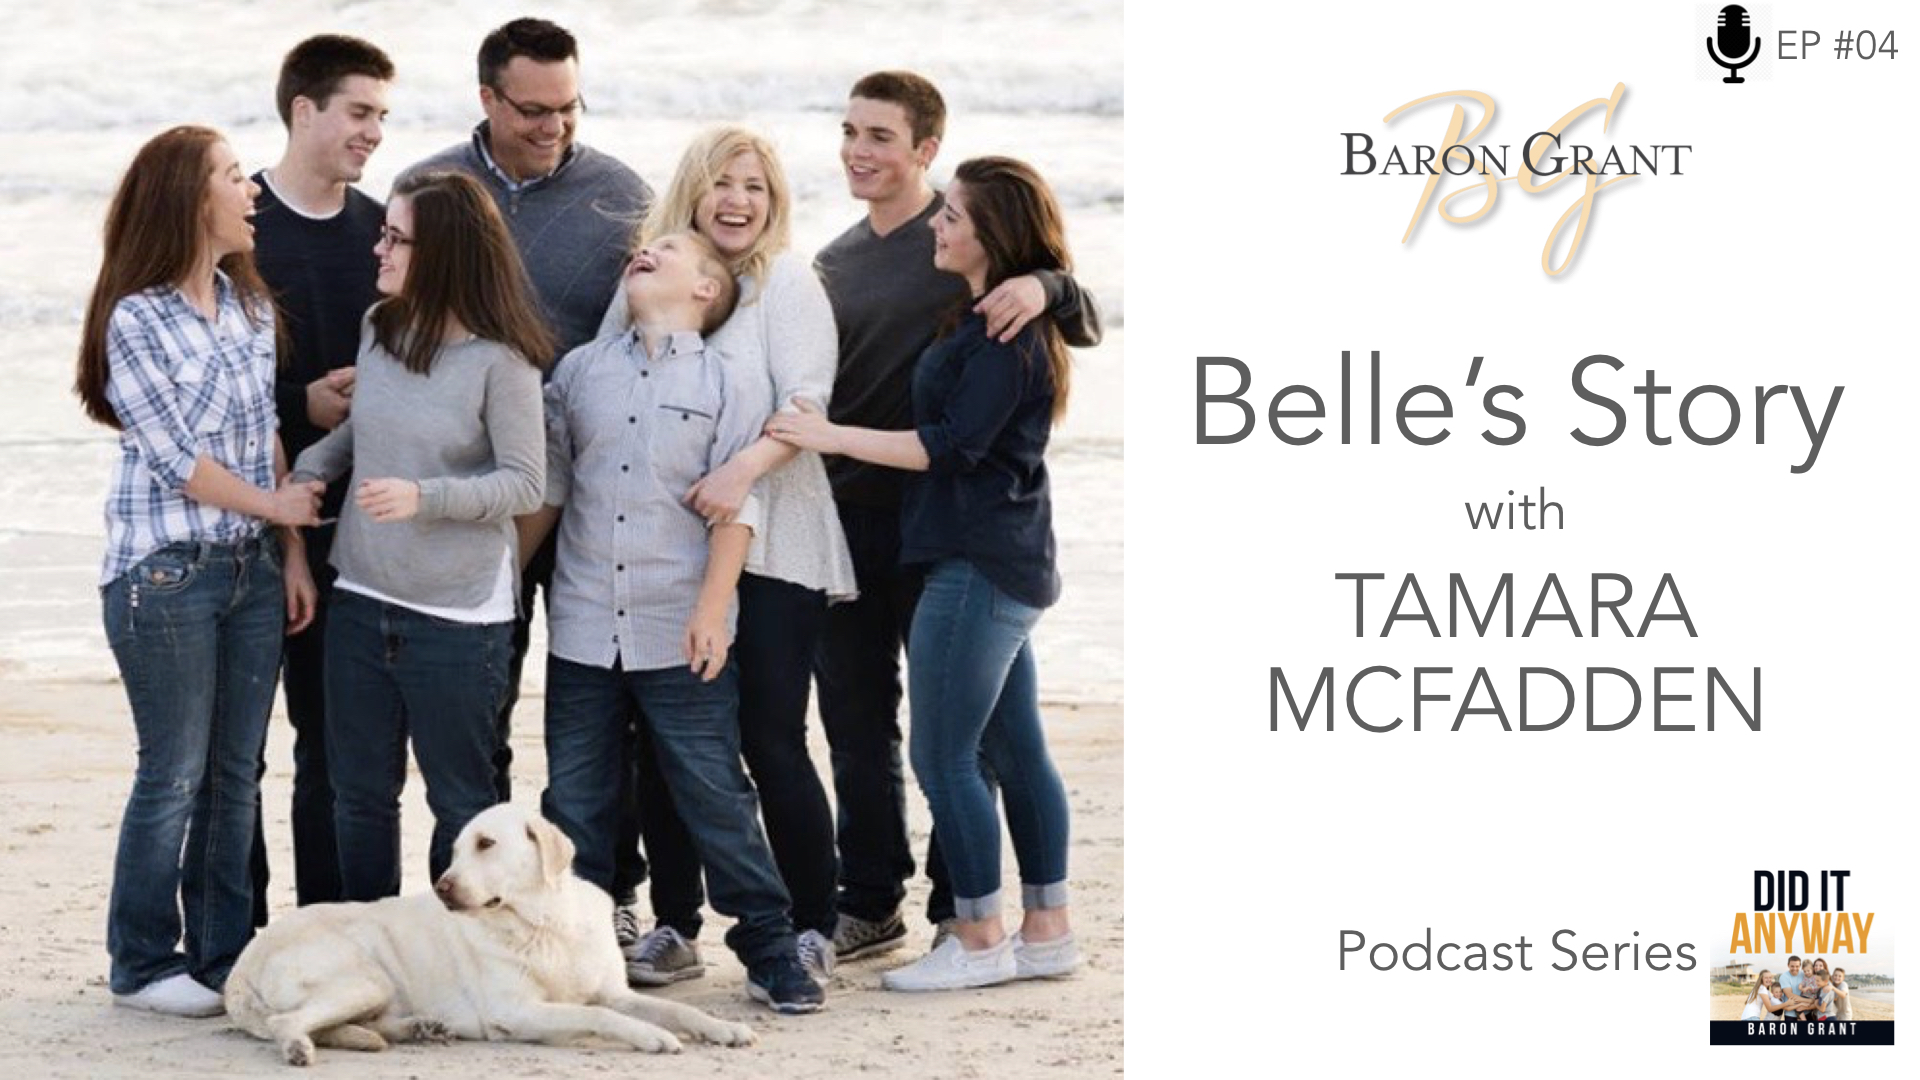 - What an amazing lady Tamara is a mum of 6 beautiful children. Simply being a mum is tough enough, but one of Tamara's children, Belle, is faced with life crippling daily seizures, among other health concerns. Having Belle is one of the greatest joys of Tamara's life, however it comes with its own set of challenges. Listen to her as she shares with us her day to day joys, and the challenges she experiences as she cares for Belle and her other children.